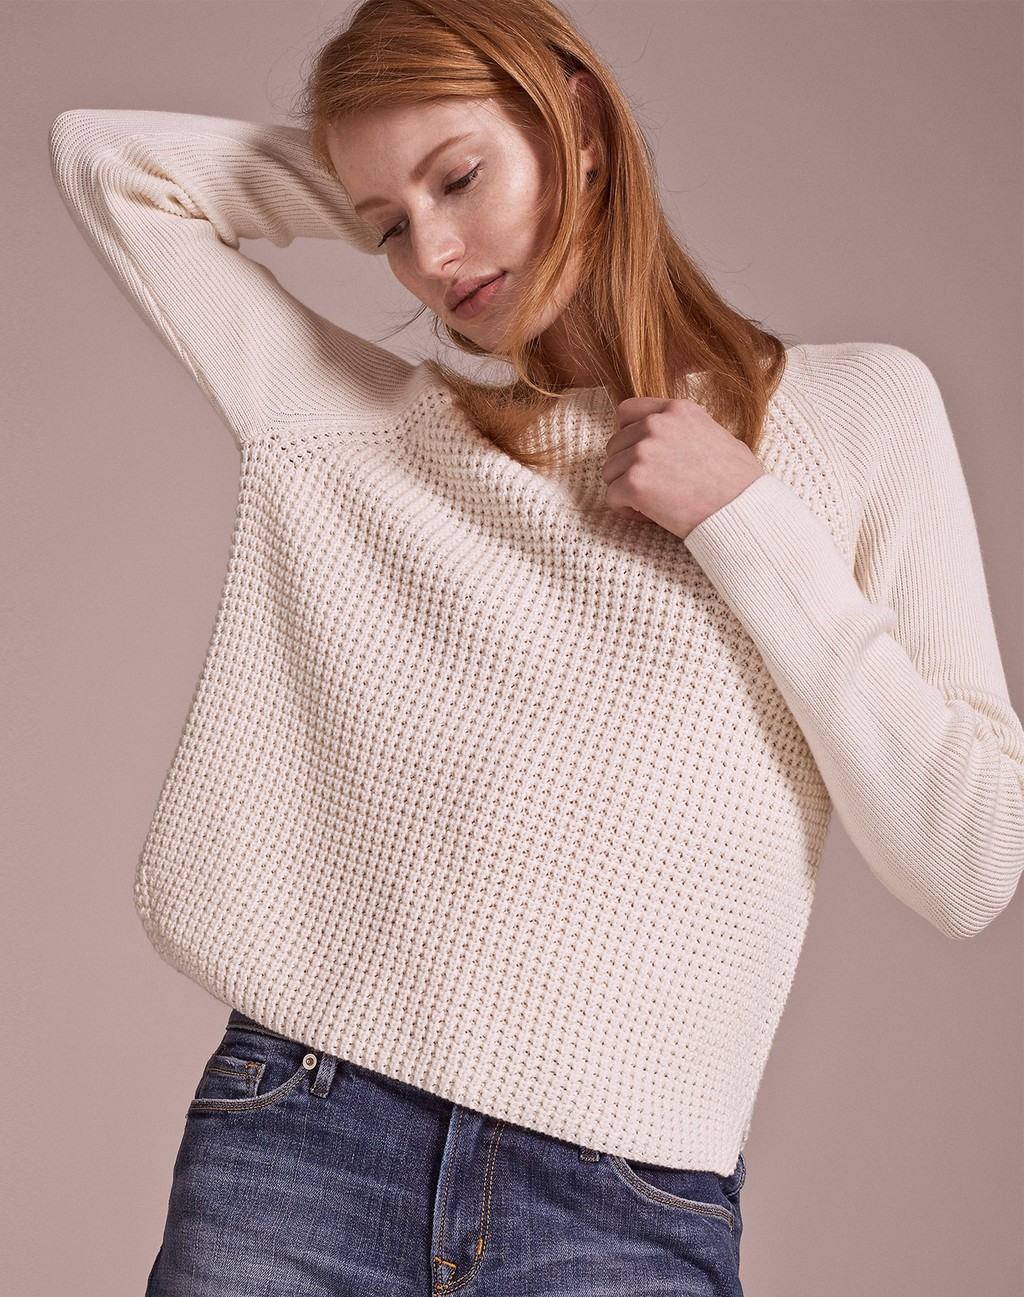 Textured Stitch Jumper Soft White - pattern: plain; style: standard; predominant colour: ivory/cream; occasions: casual; length: standard; fibres: cotton - mix; fit: loose; neckline: crew; sleeve length: long sleeve; sleeve style: standard; texture group: knits/crochet; pattern type: fabric; season: a/w 2015; wardrobe: basic